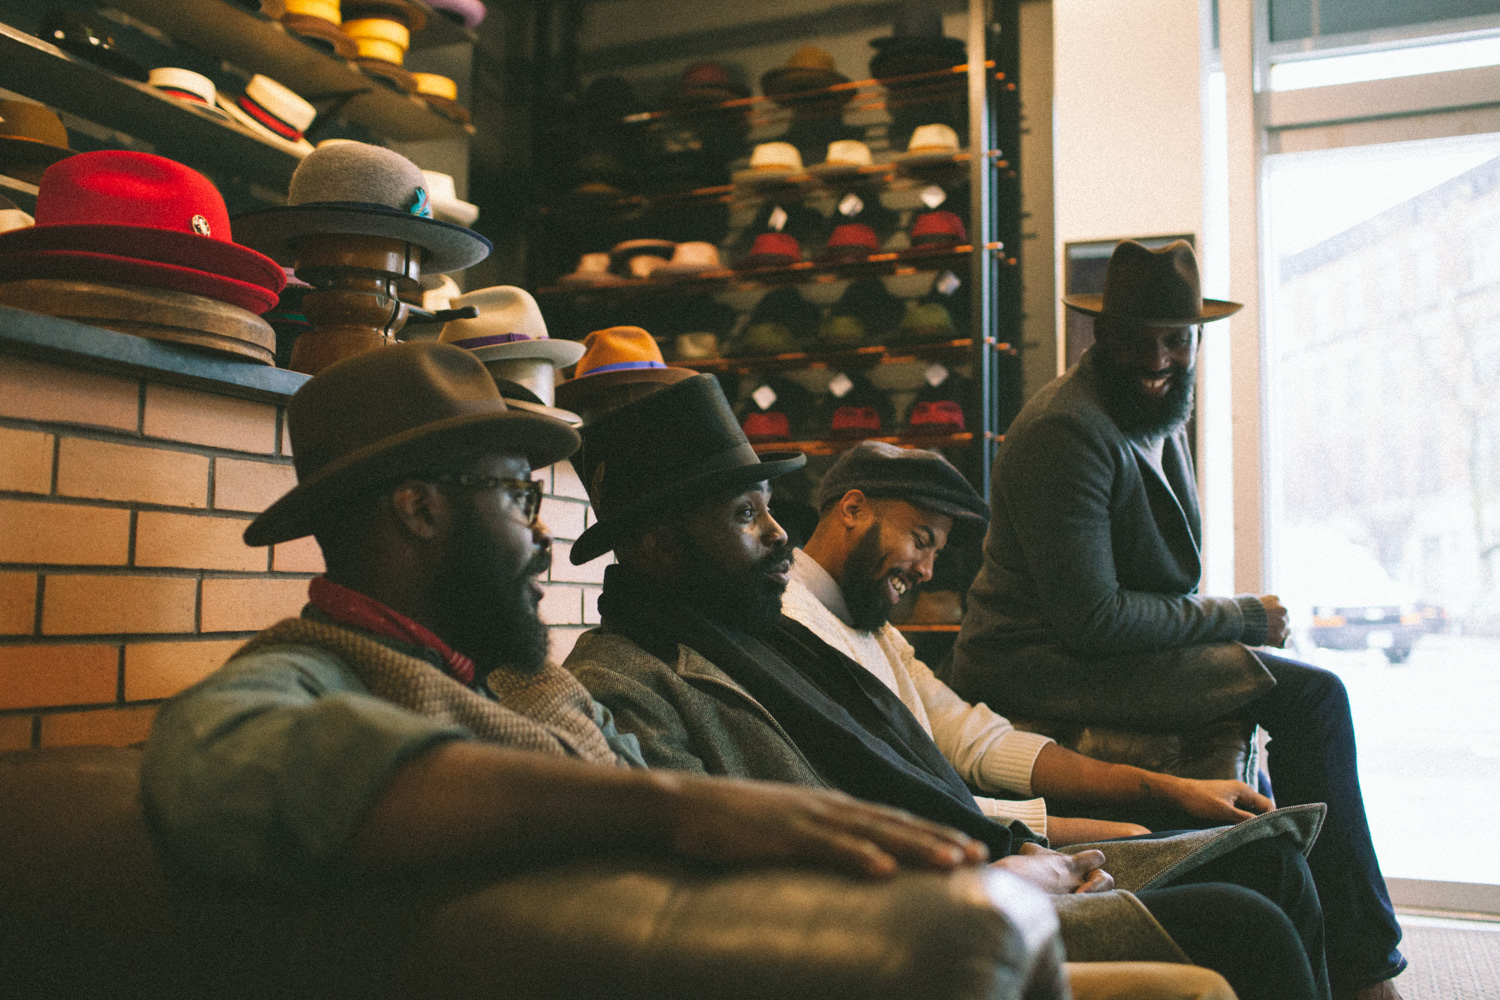 d3af629802c68 BC  It s apparent that your store is sells more than just hats. You ve  created a space where men of color can come hang out with their friends